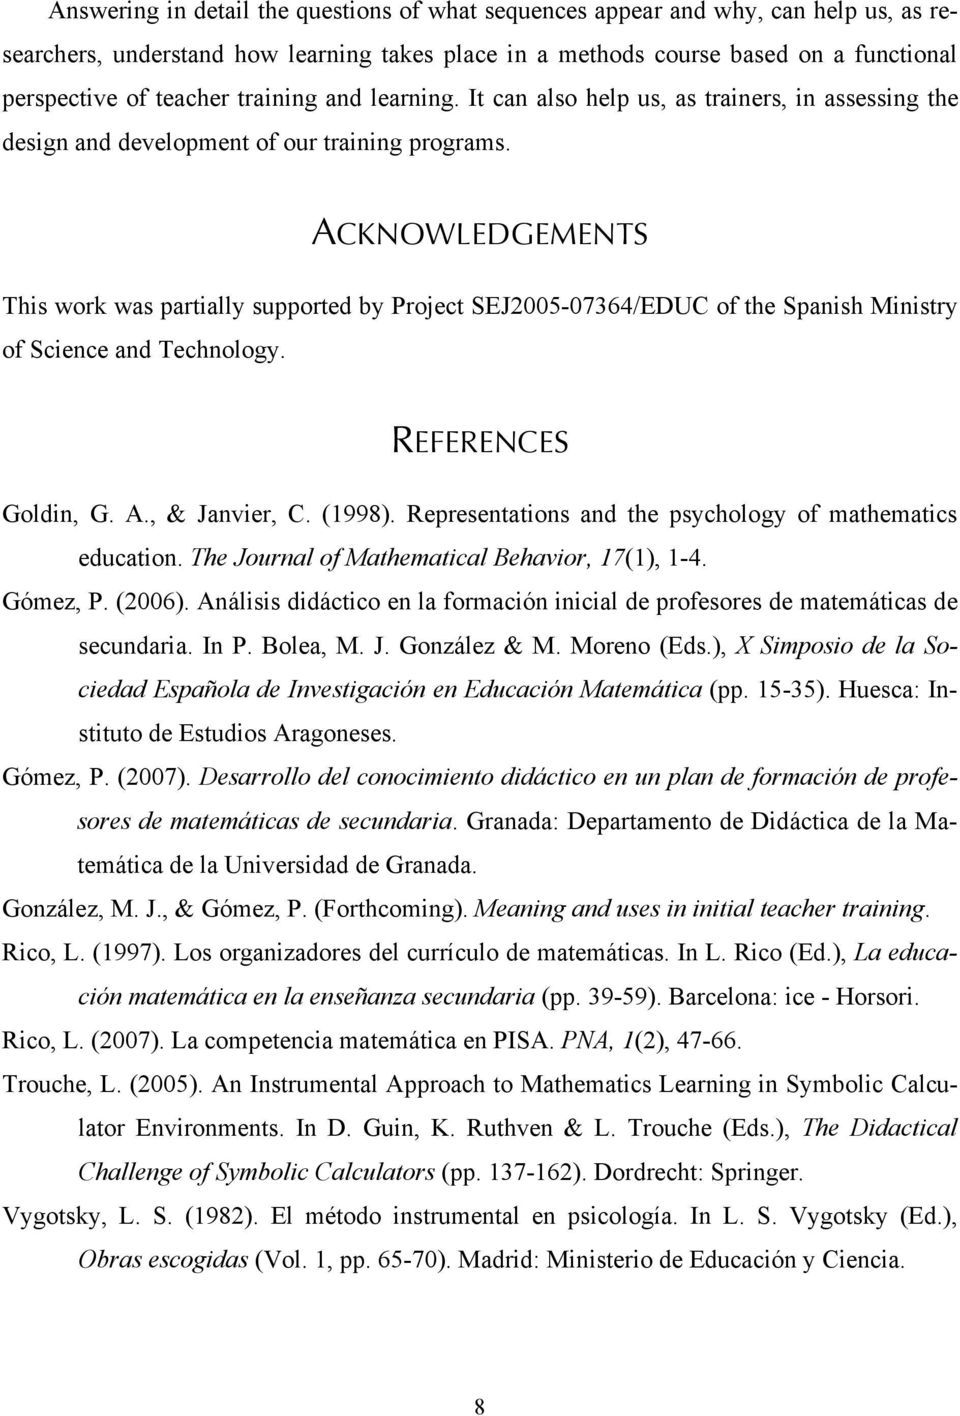 ACKNOWLEDGEMENTS This work was partially supported by Project SEJ2005-07364/EDUC of the Spanish Ministry of Science and Technology. REFERENCES Goldin, G. A., & Janvier, C. (1998).